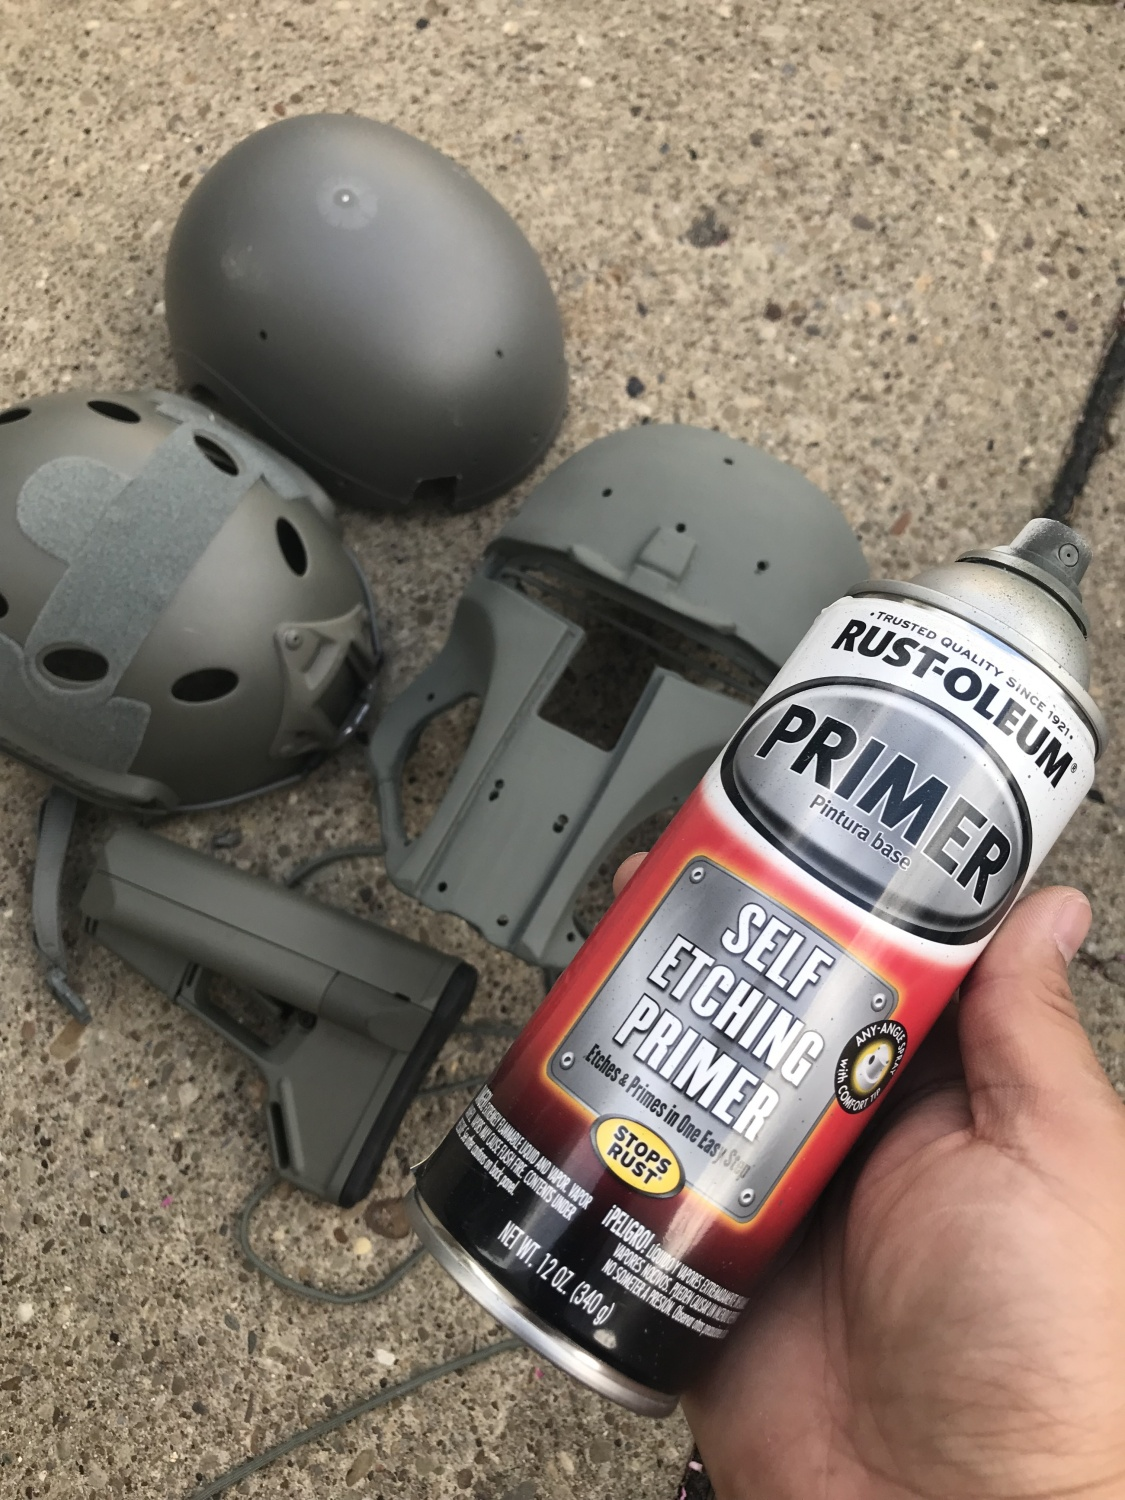 So I Was Pleasantly Surprised To Find Out How Well This Primer Matches Foliage Green As It My Intention Paint Diy Galac Tac Helmet In Fg